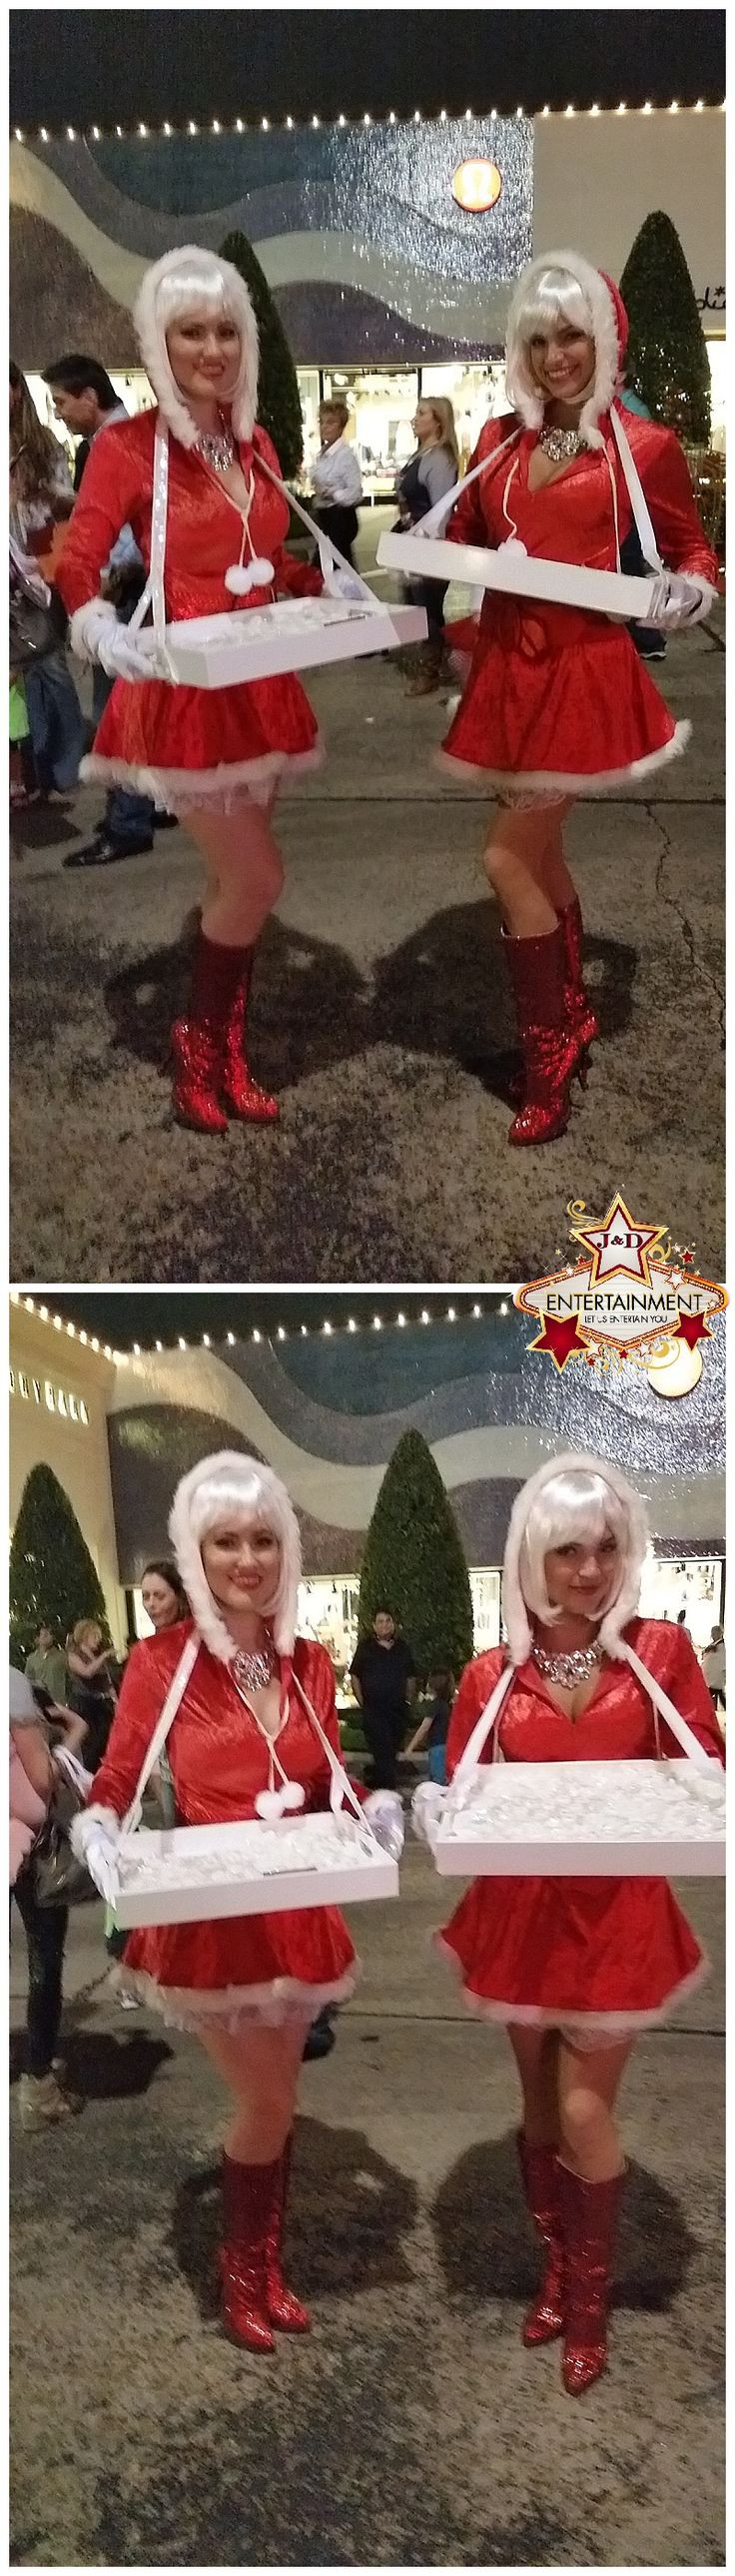 Christmas Party Entertainment Ideas For Adults  Best 25 Cigarette girl ideas on Pinterest